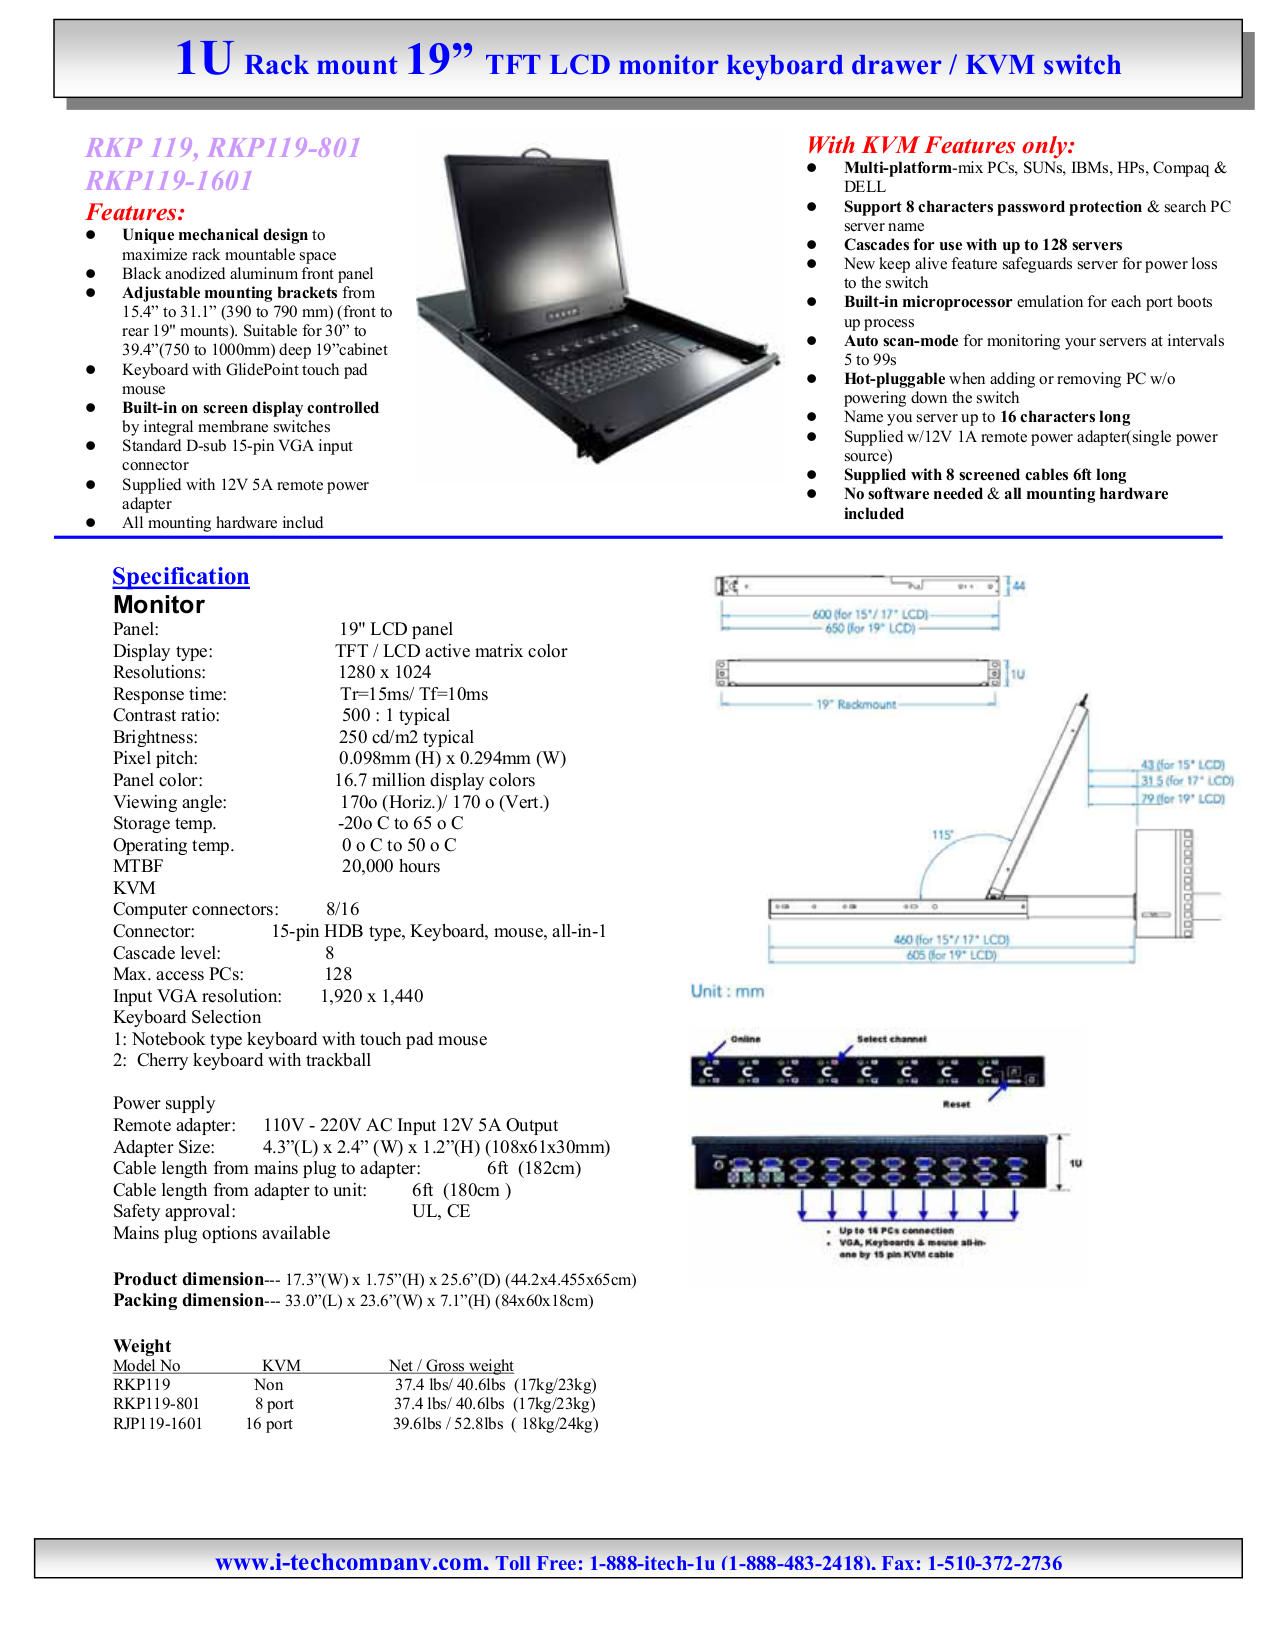 pdf for I-Tech Other RKP119-801 Keyboard Drawers manual